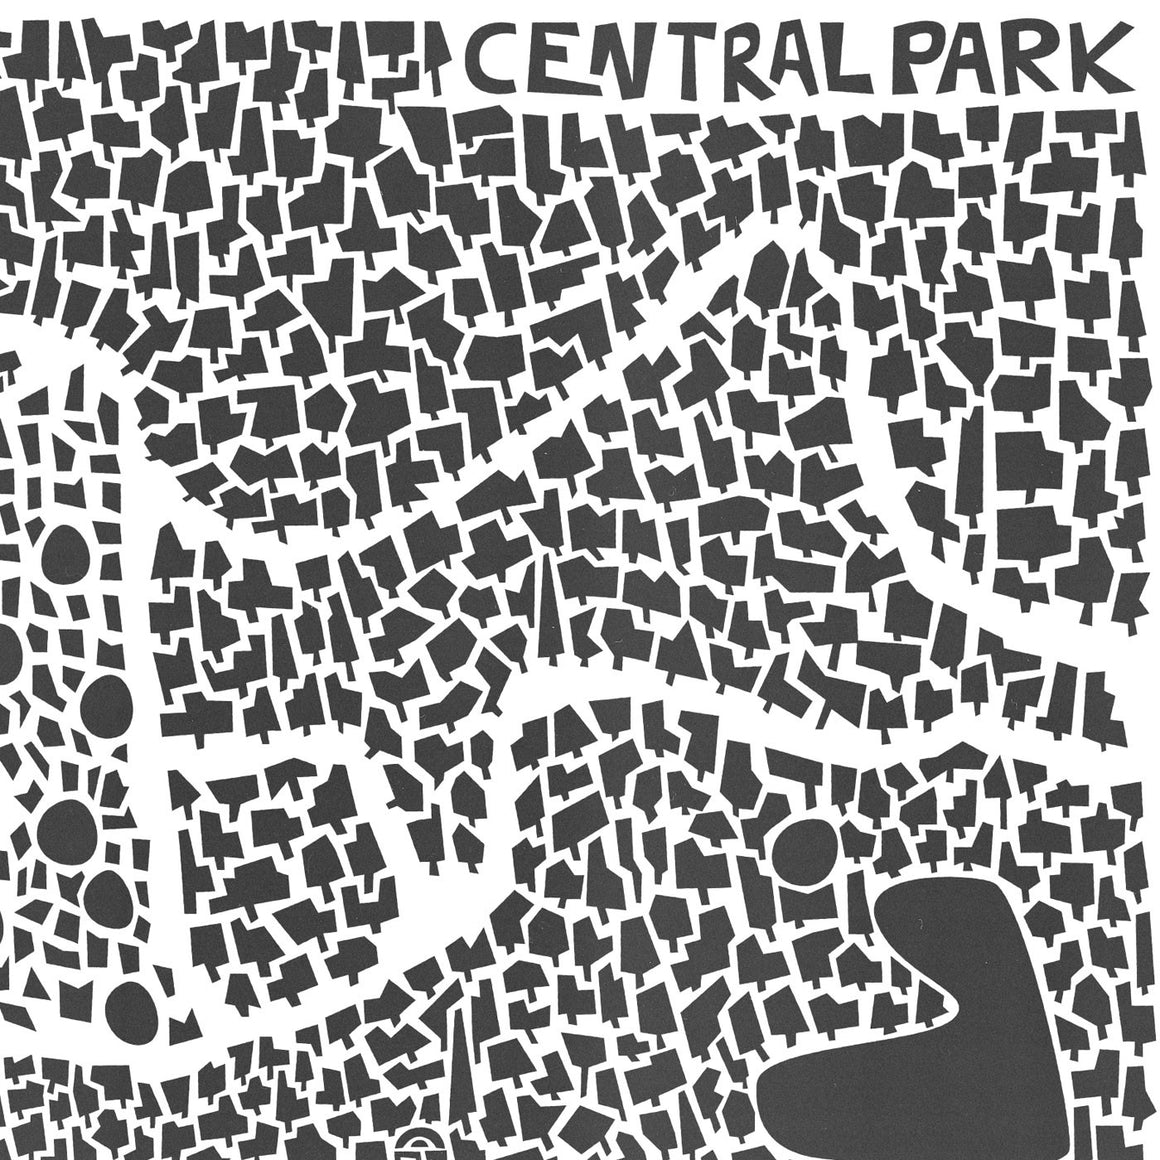 Central Park new York illustration art print by fox and velvet